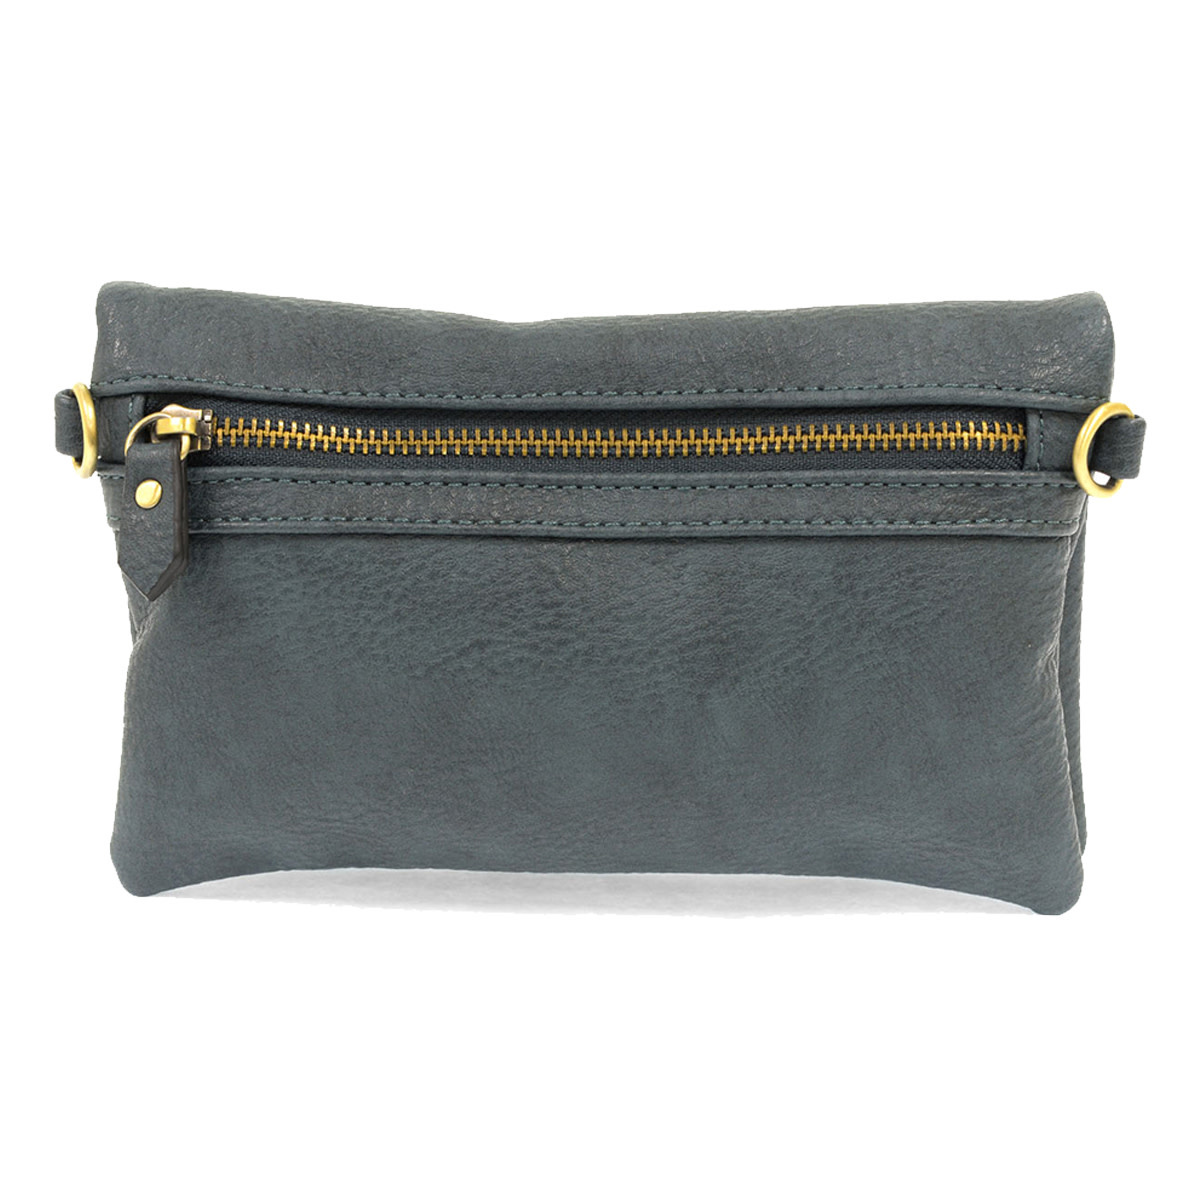 Joy Susan Joy Susan Kate Crossbody Handbag Dark Chambray